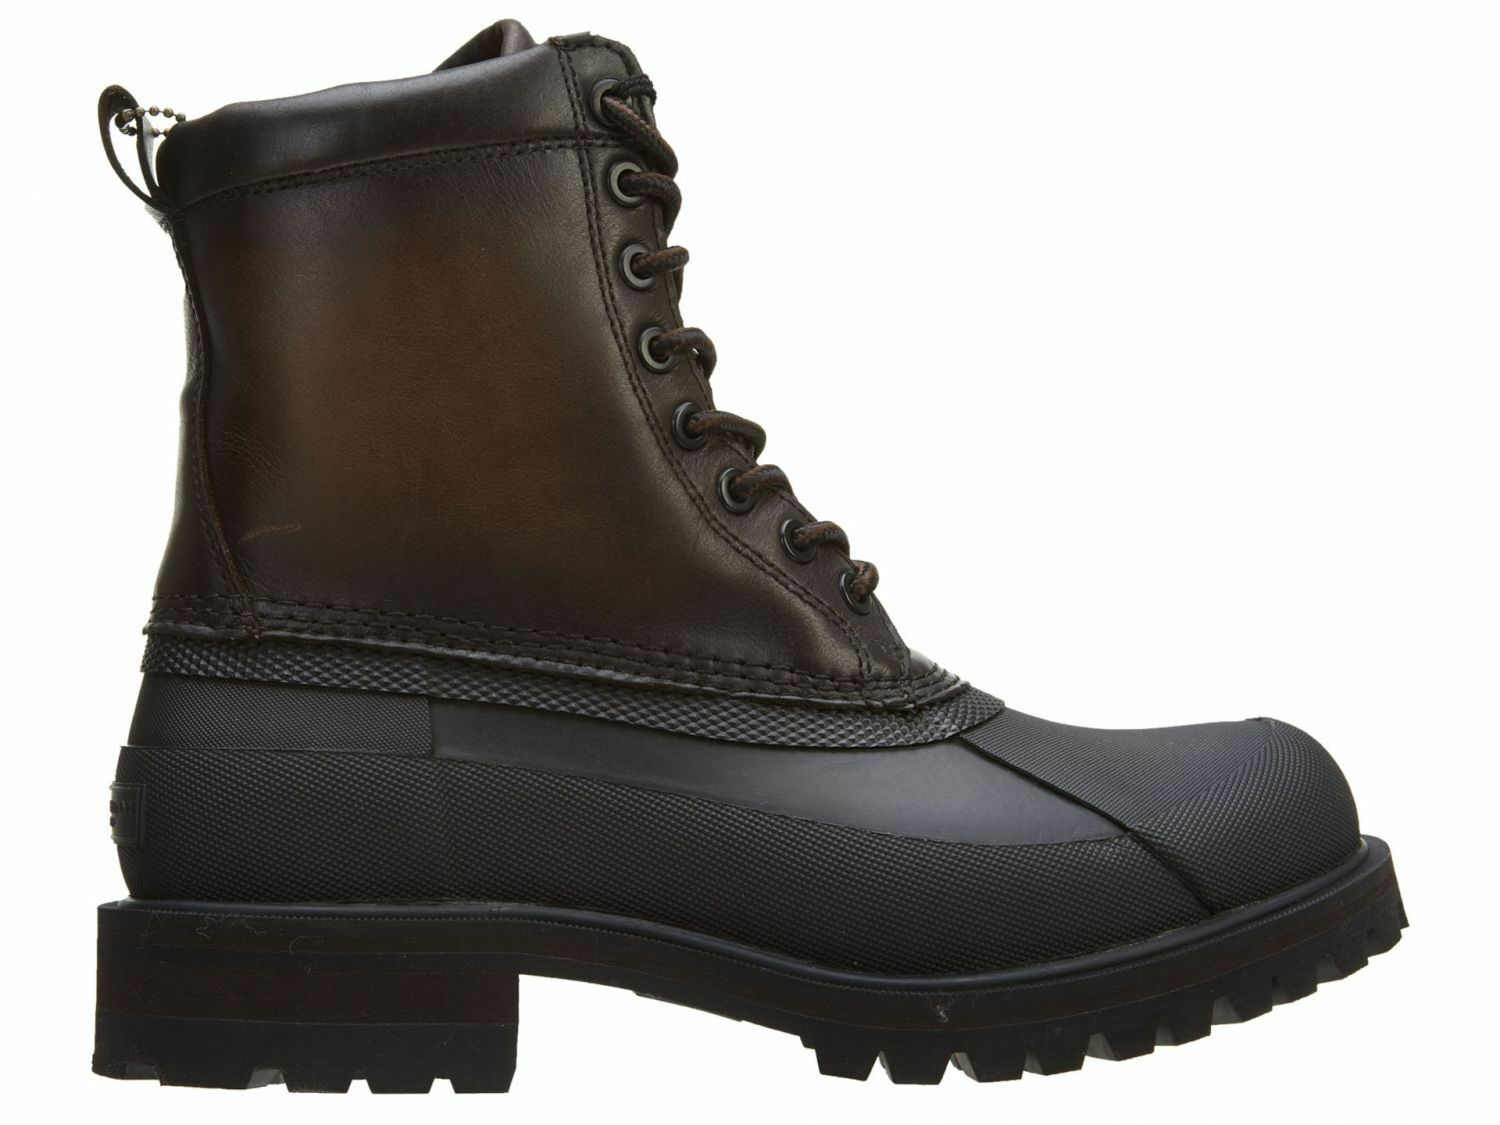 Frye Alaska Lace Up Mens 3486161-STC Stone Leather Waterproof stivali Dimensione 9.5